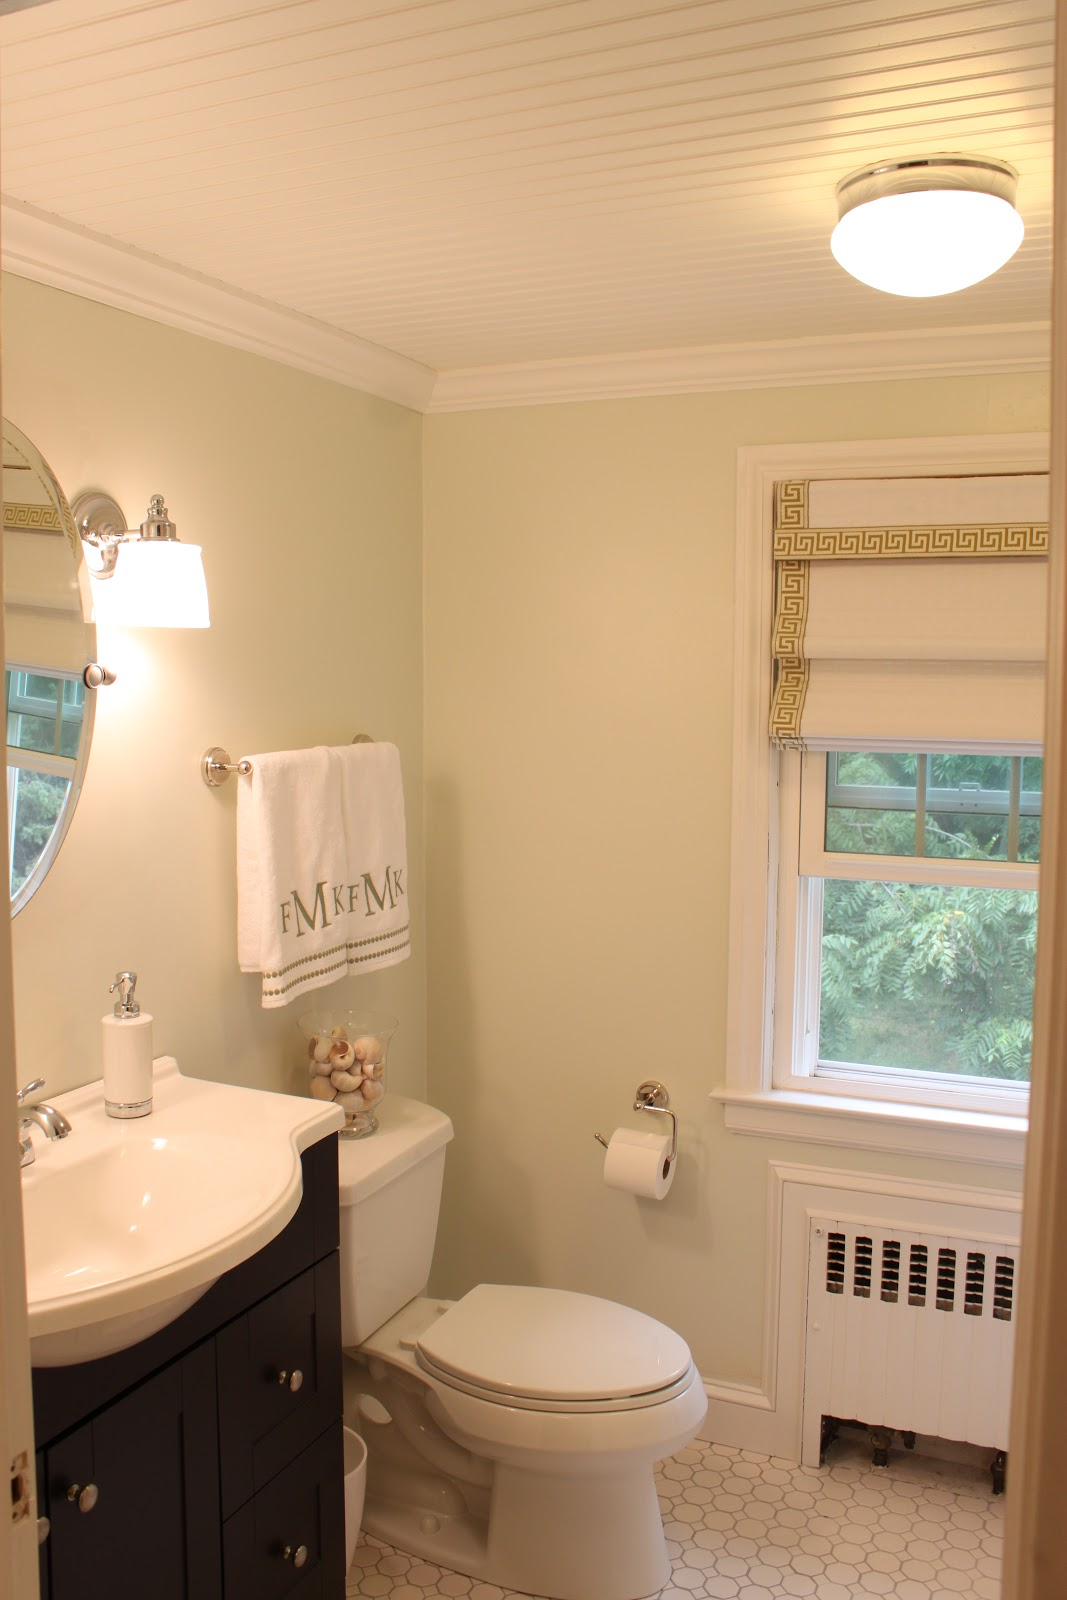 Green Street: Our Newly Renovated Bathroom